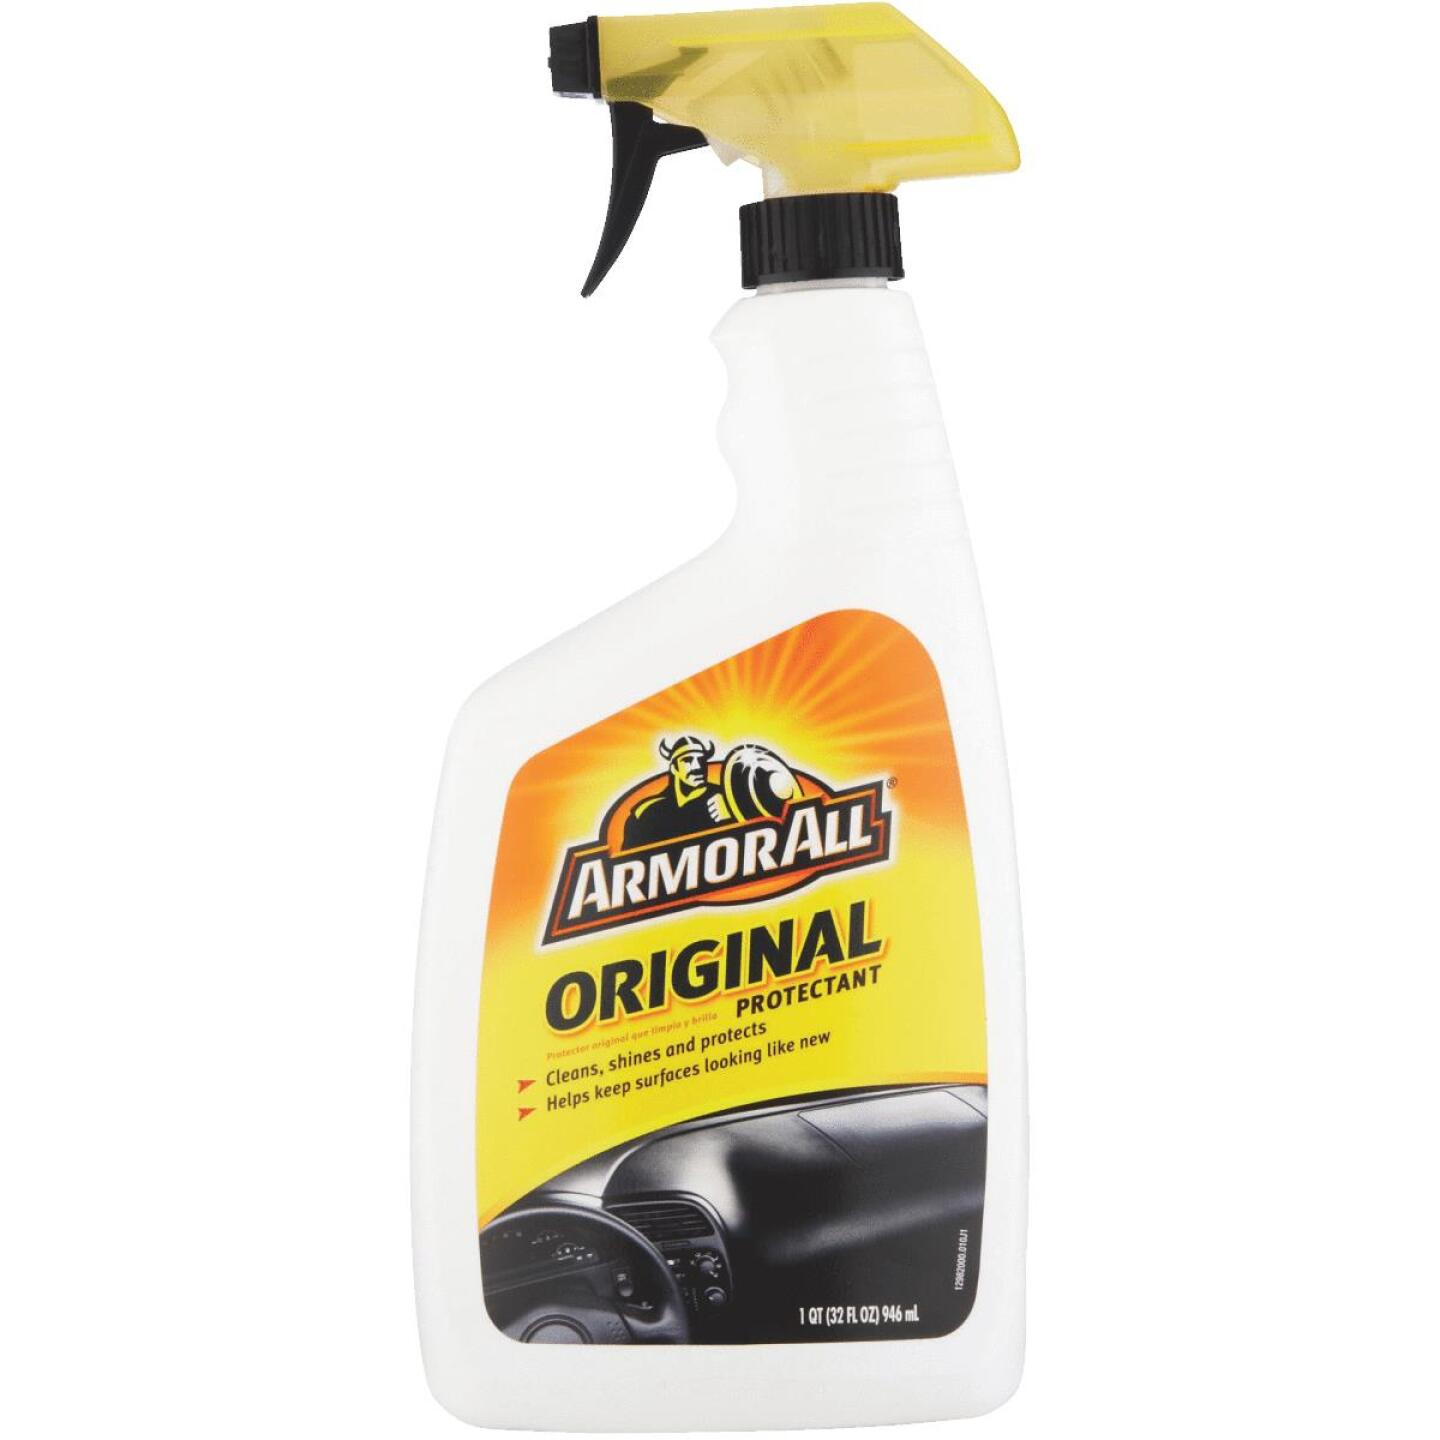 Armor All 32 oz Trigger Spray Original Protectant Image 1